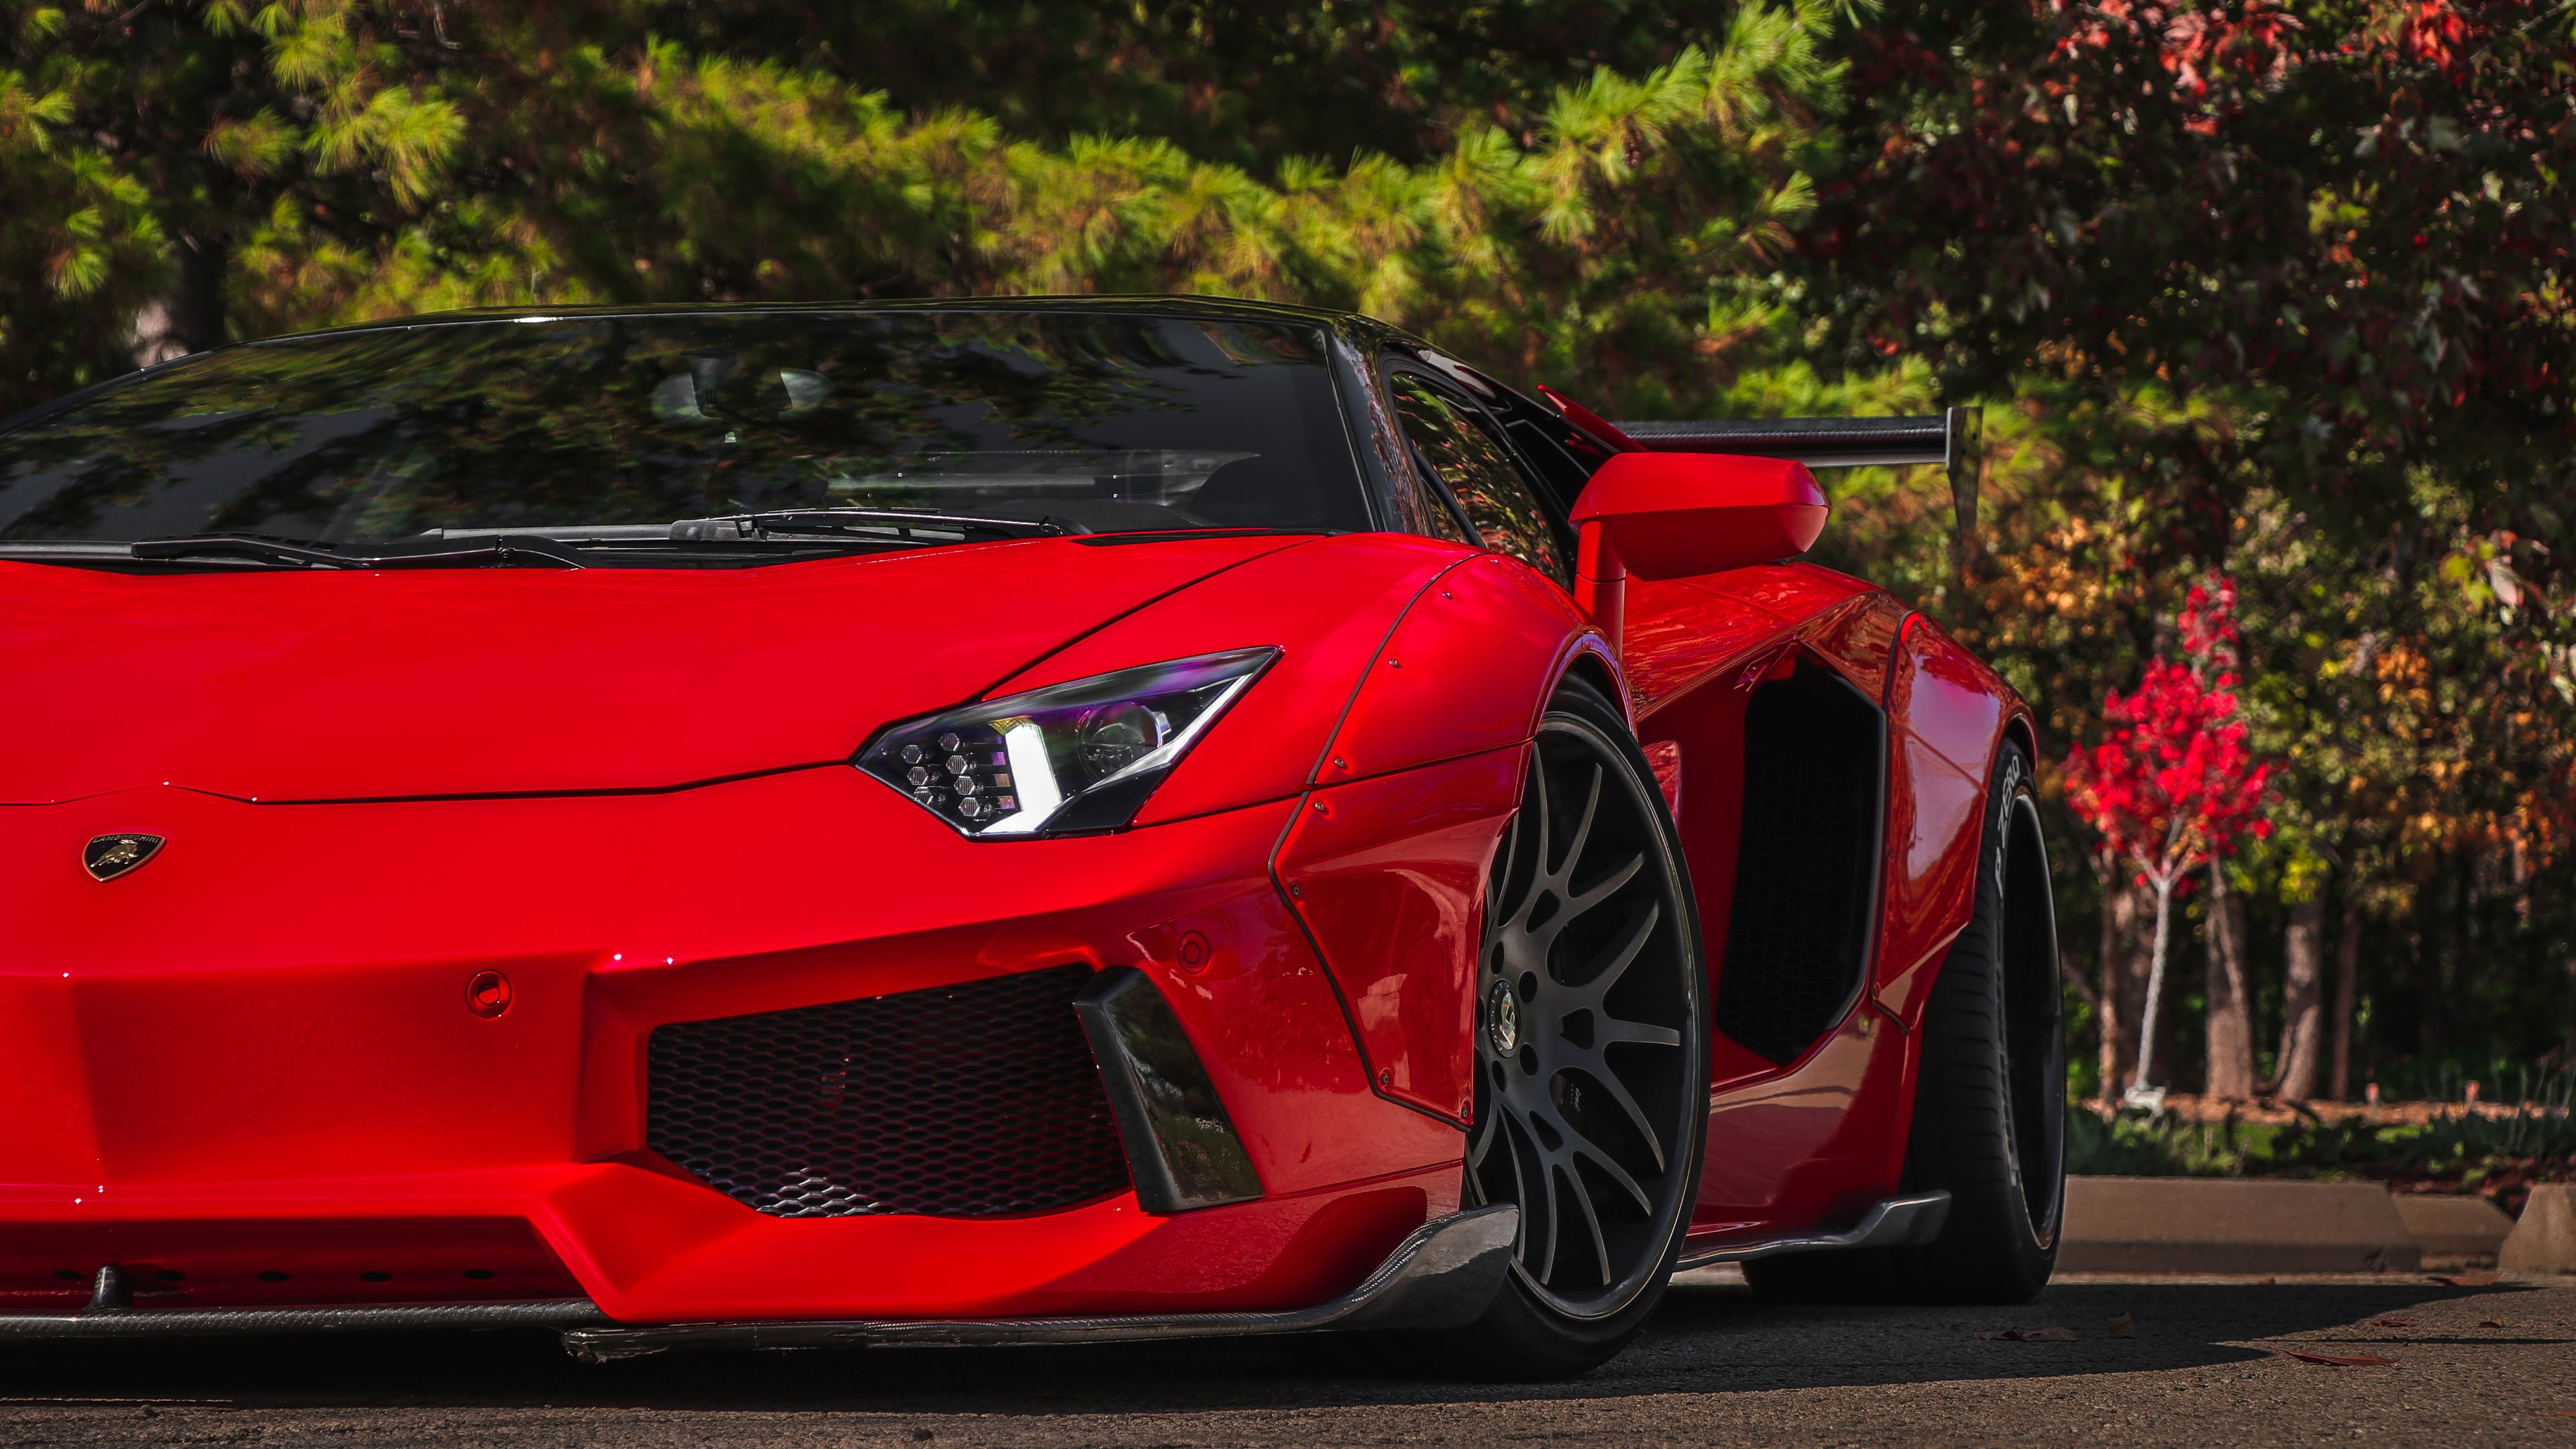 Wallpaper 4k Red Lamborghini Aventador 4k 4k Wallpapers Cars Wallpapers Hd Wallpapers Lamborghini Aventador Wallpapers Lamborghini Wallpapers Lamborghini Aventador Lamborghini Instagram